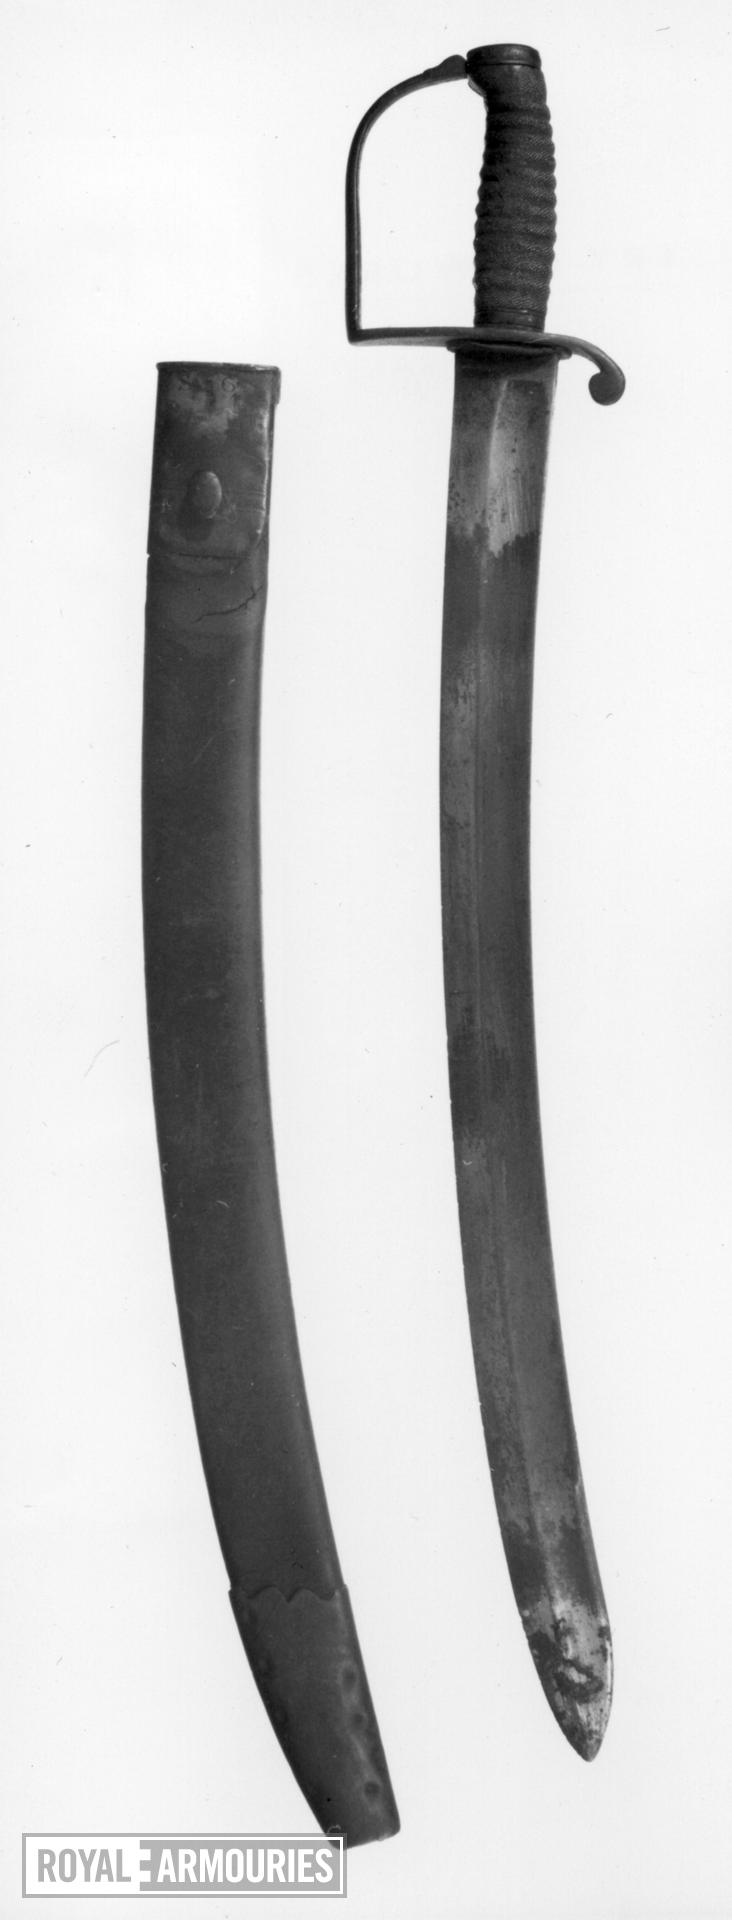 Sword and scabbard Police sword and scabbard. For the Dismounted Horse Patrol. Blade marked W. Parker.